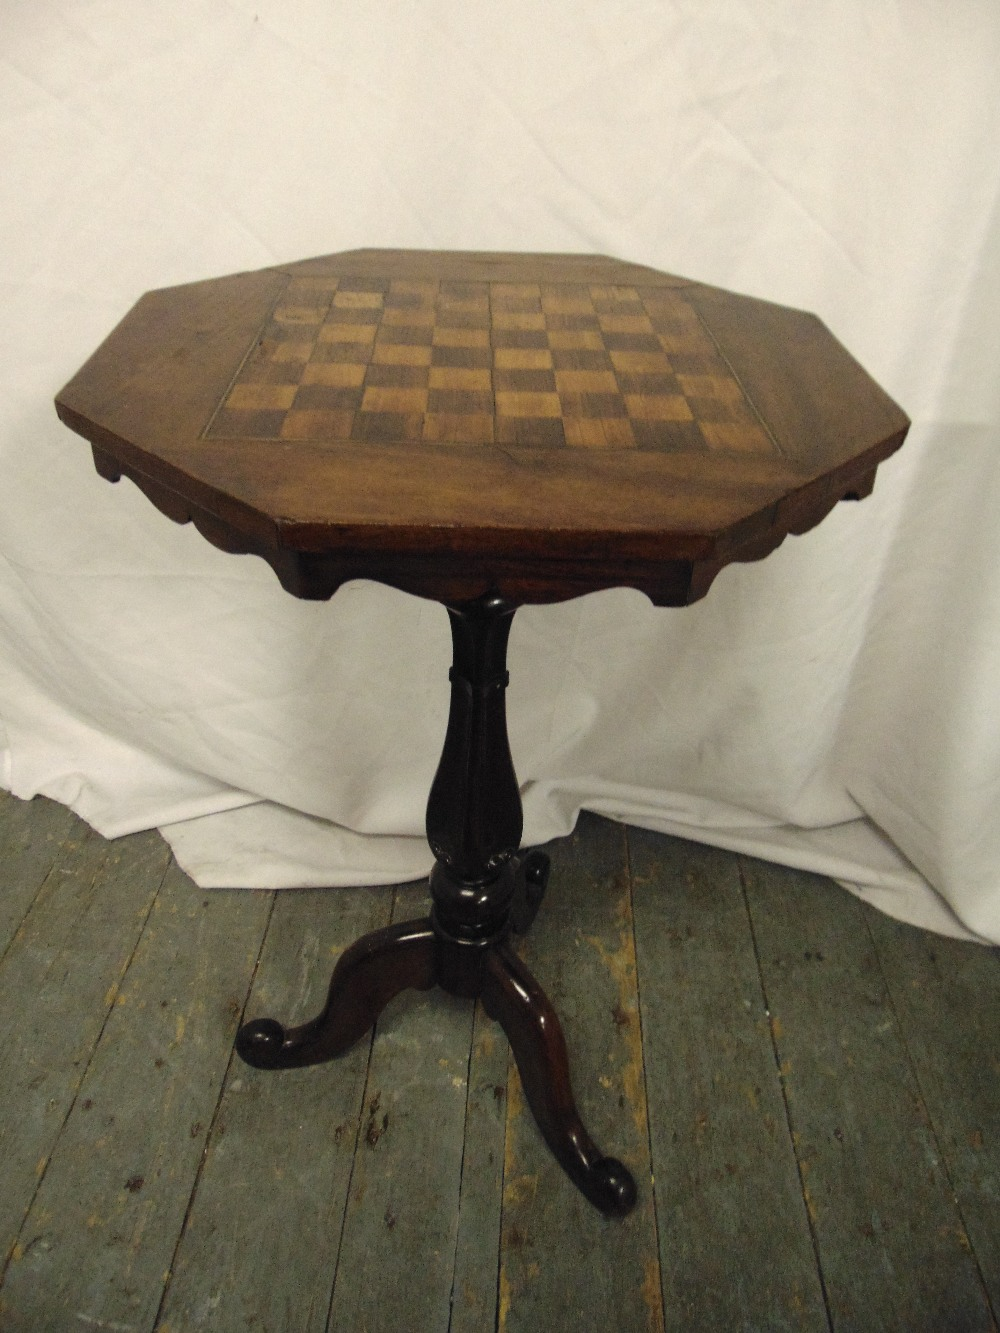 Lot 18 - A Victorian mahogany octagonal games table the top inlaid with a chequer board, on a baluster stem